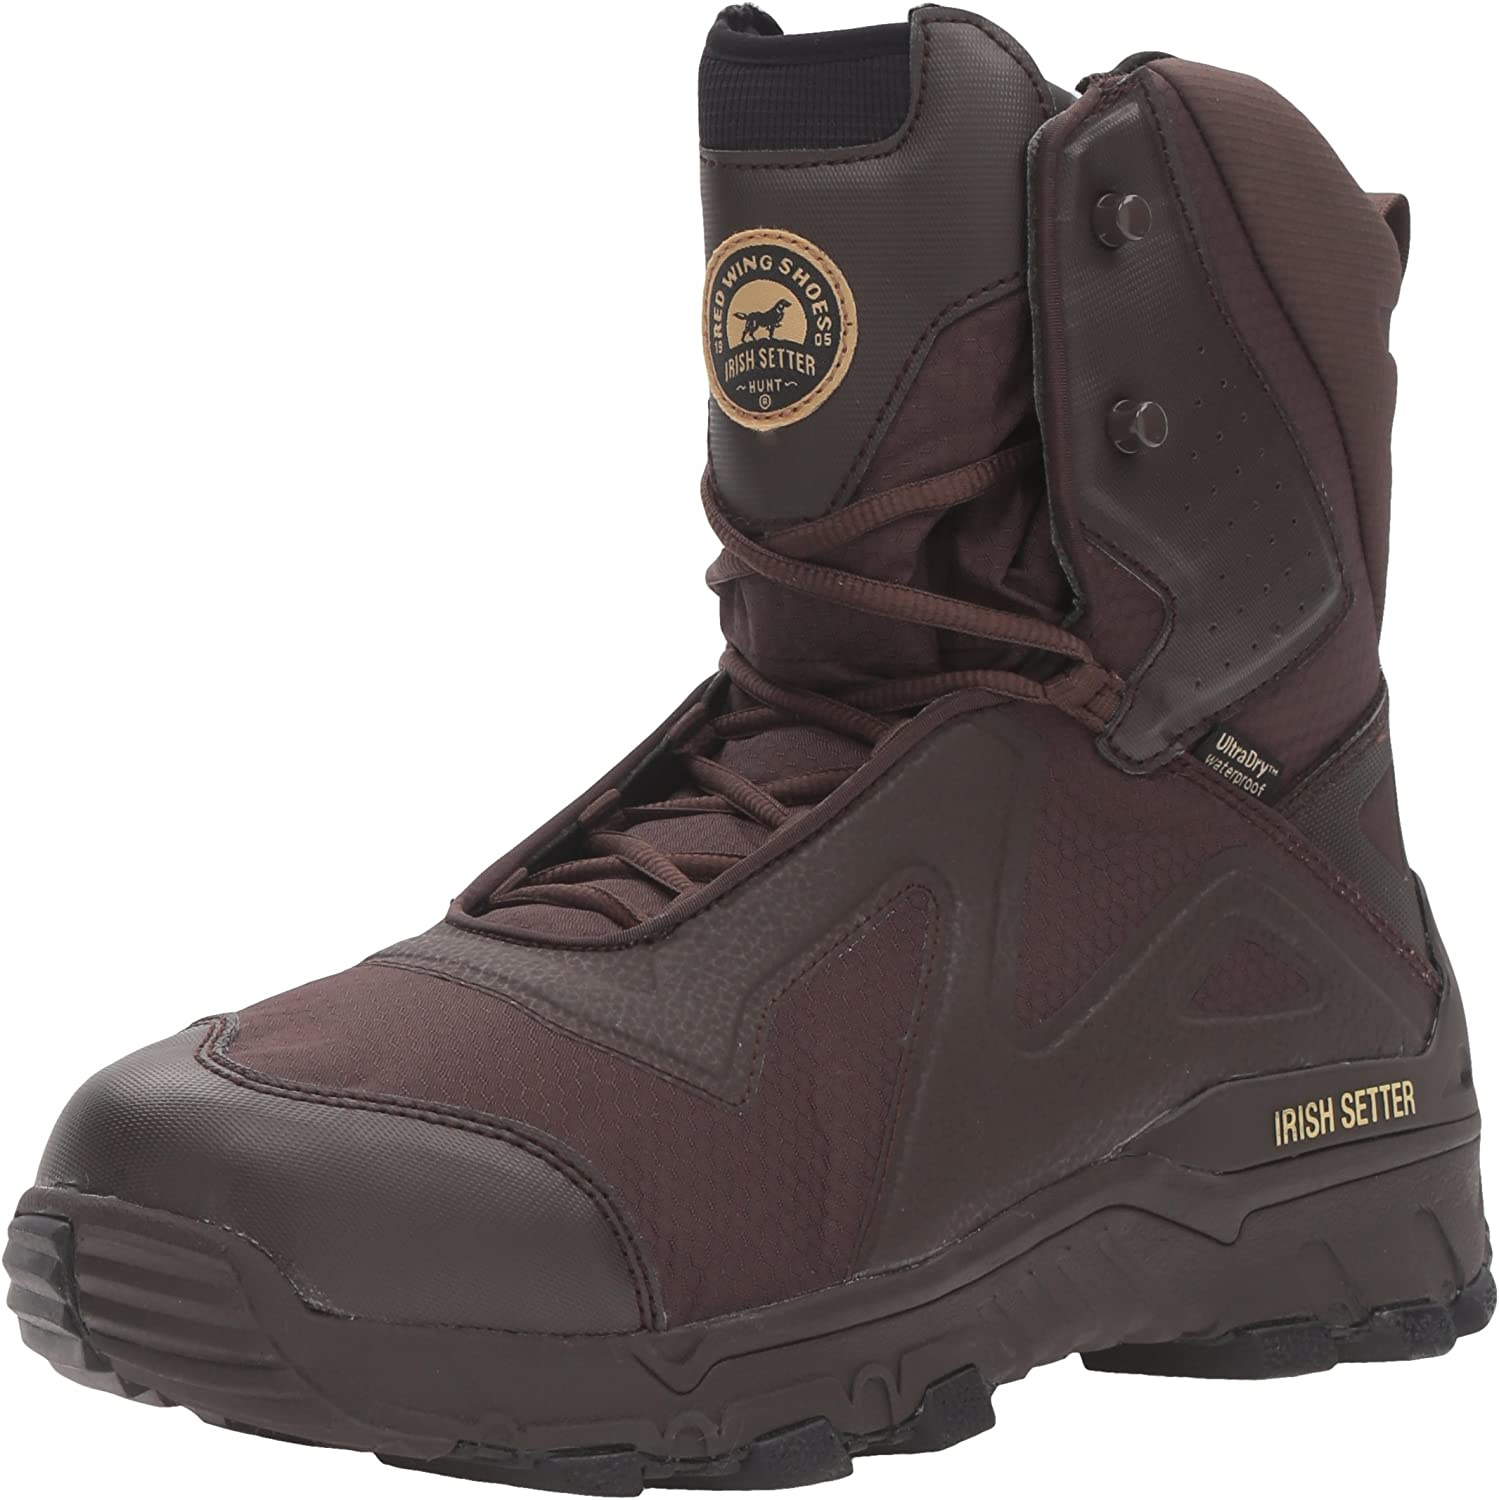 Irish Setter Men's Vaprtrek LS 821 600 Gram Hunting Boot